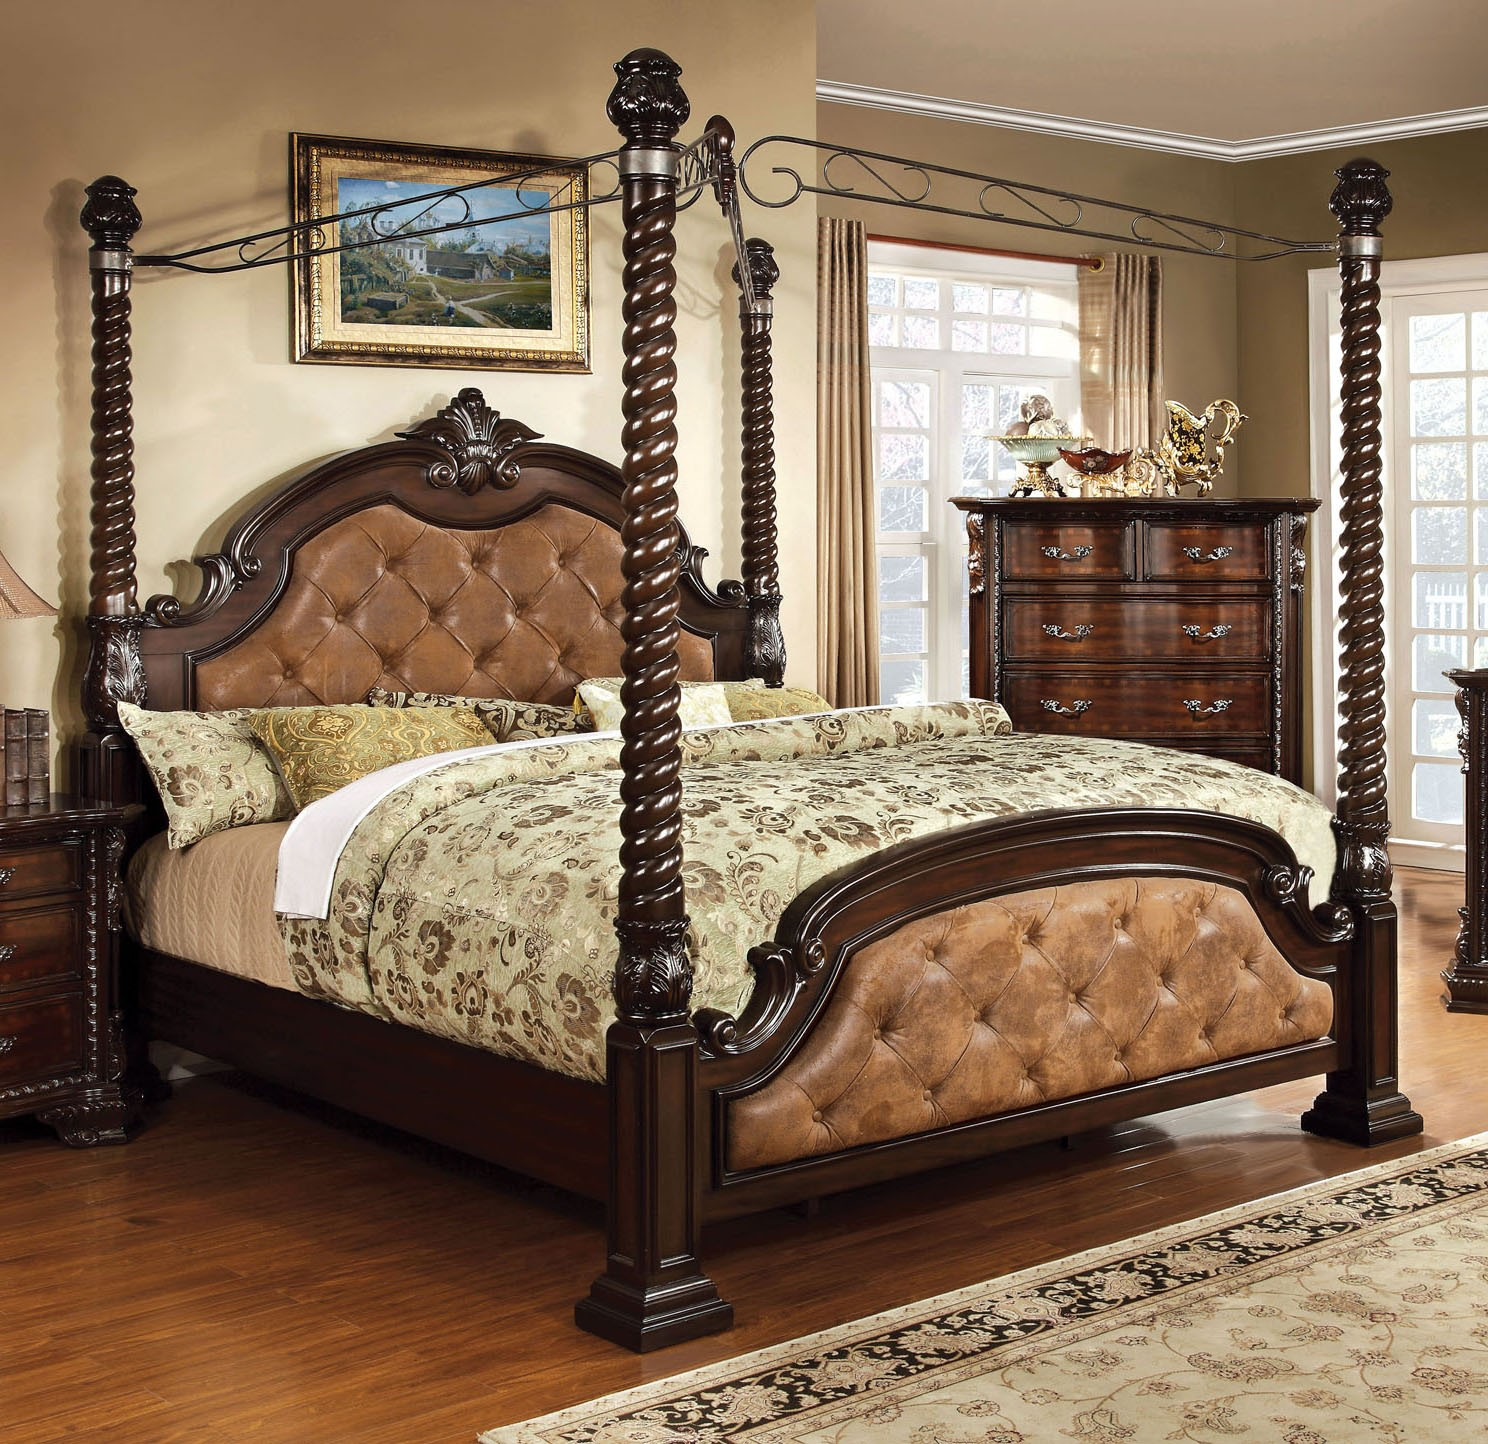 beds photo marvellous as canopy size bed creative wells the for modern bedroom king with furniture designs fabulous